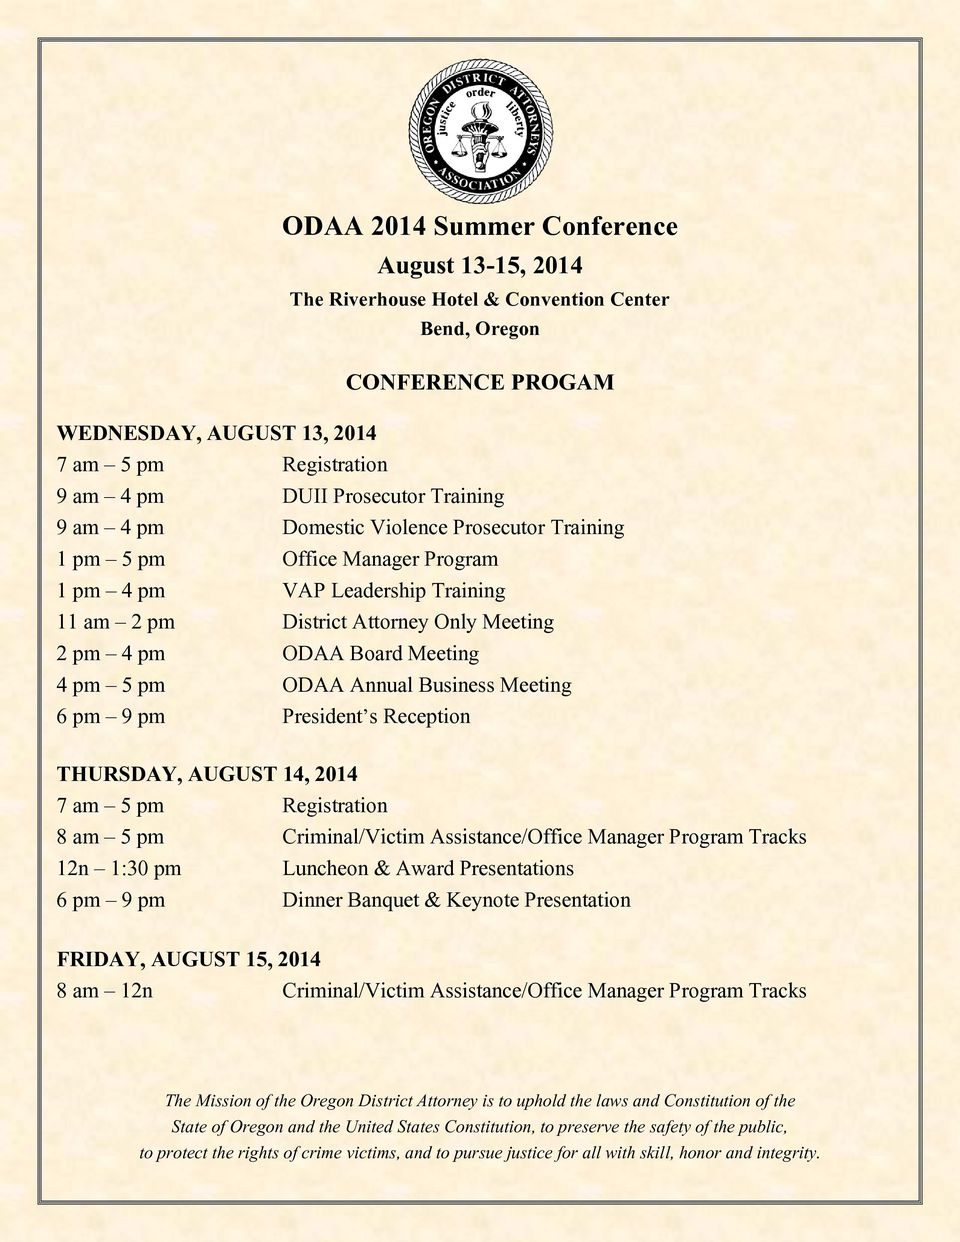 5 pm ODAA Annual Business Meeting 6 pm 9 pm President s Reception 7 am 5 pm Registration 8 am 5 pm Criminal/Victim Assistance/Office Manager Program Tracks 12n 1:30 pm Luncheon & Award Presentations